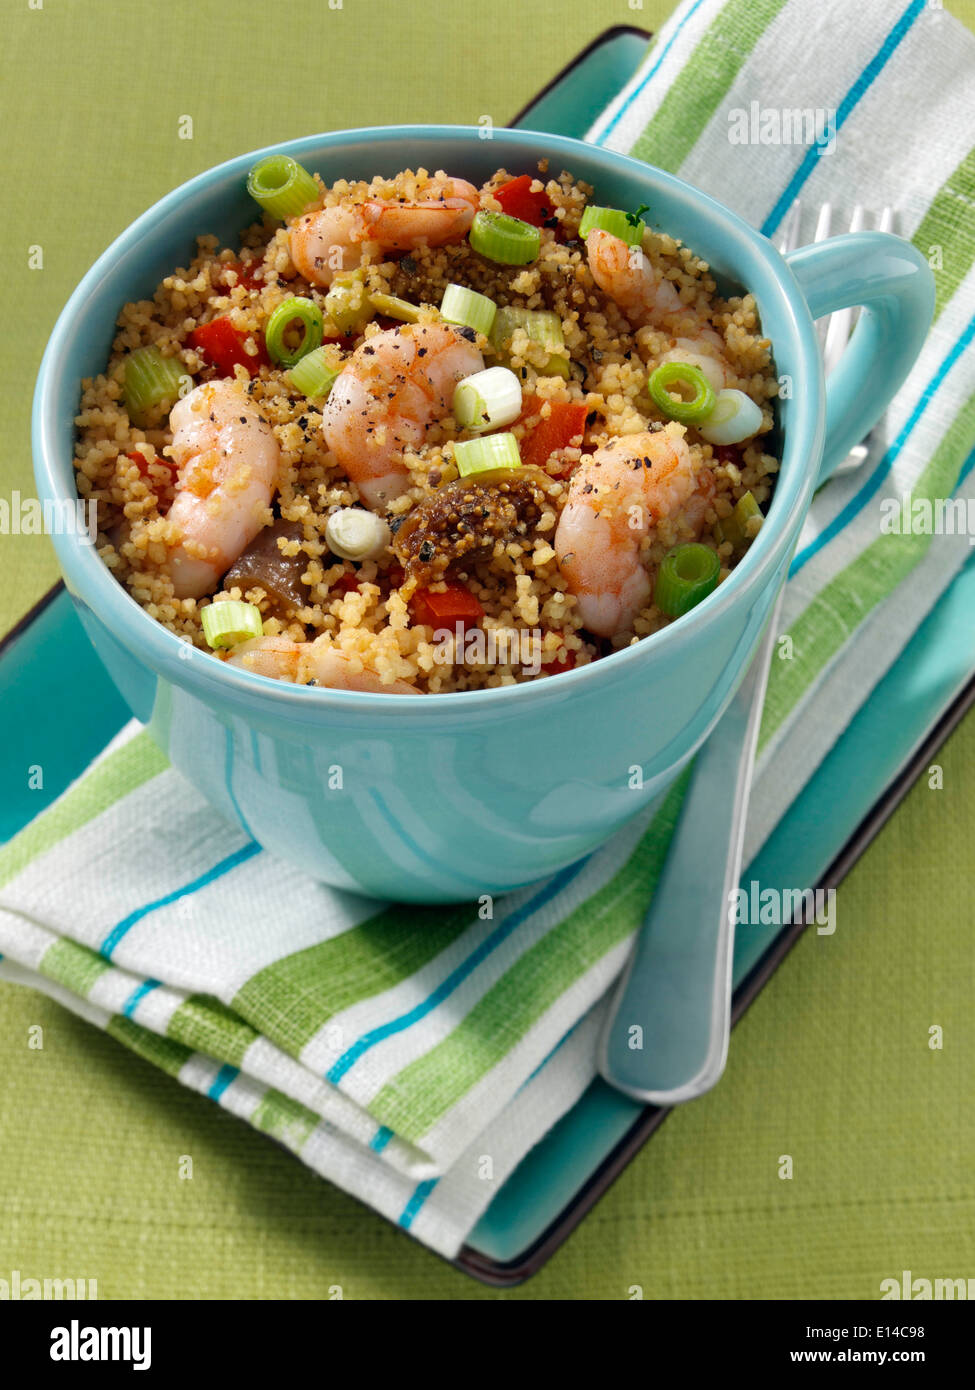 Prawns and couscous microwaved in a mug - Stock Image